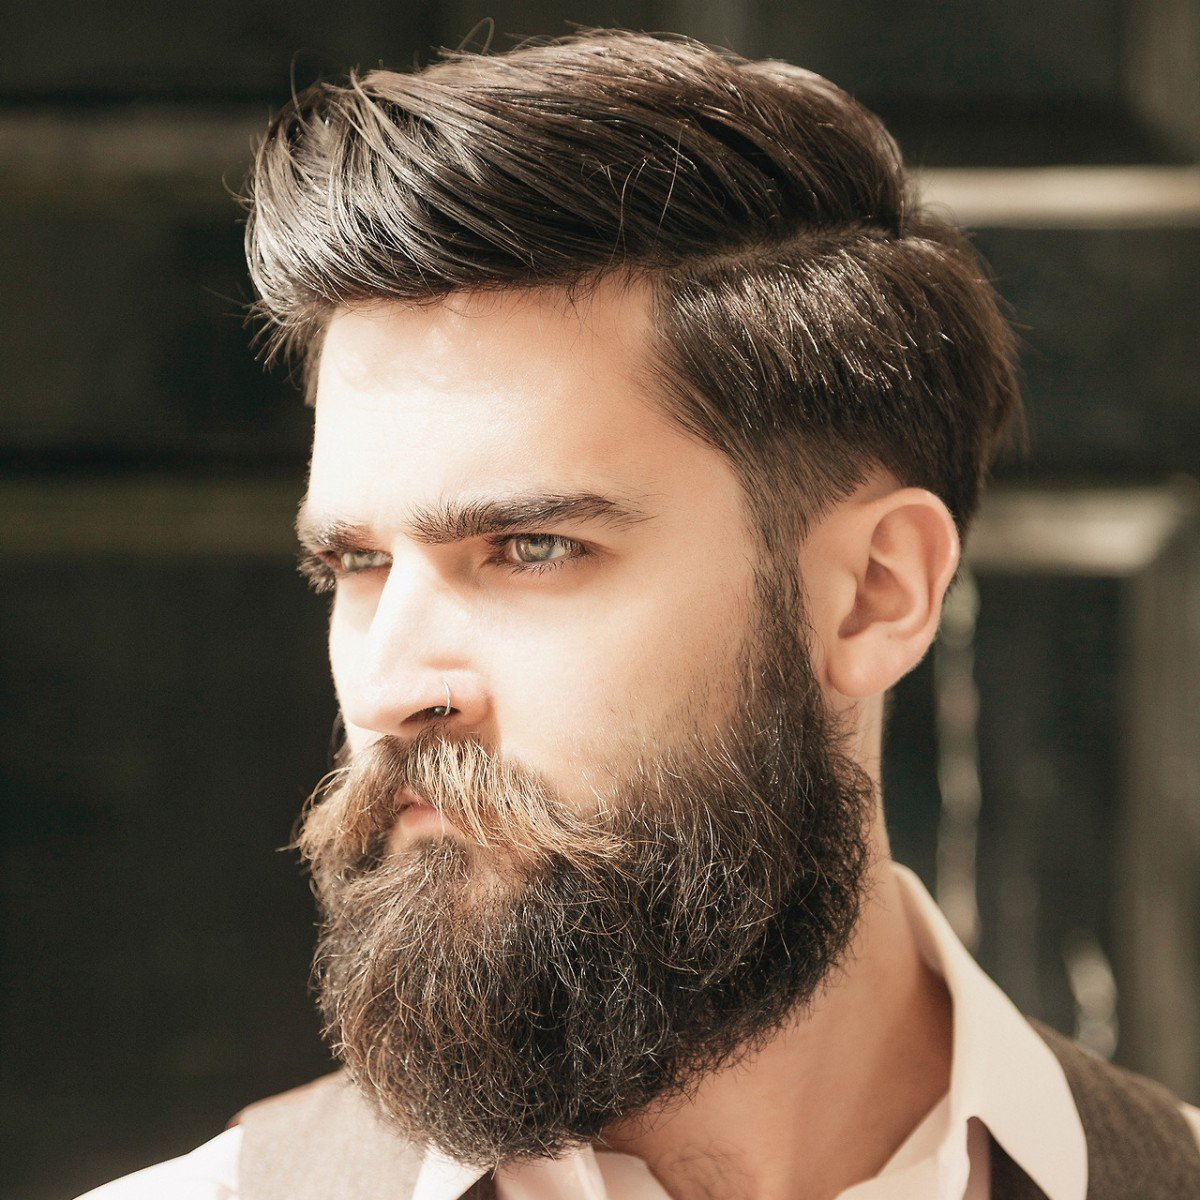 The Comb OverHairstyle for men with thin hair